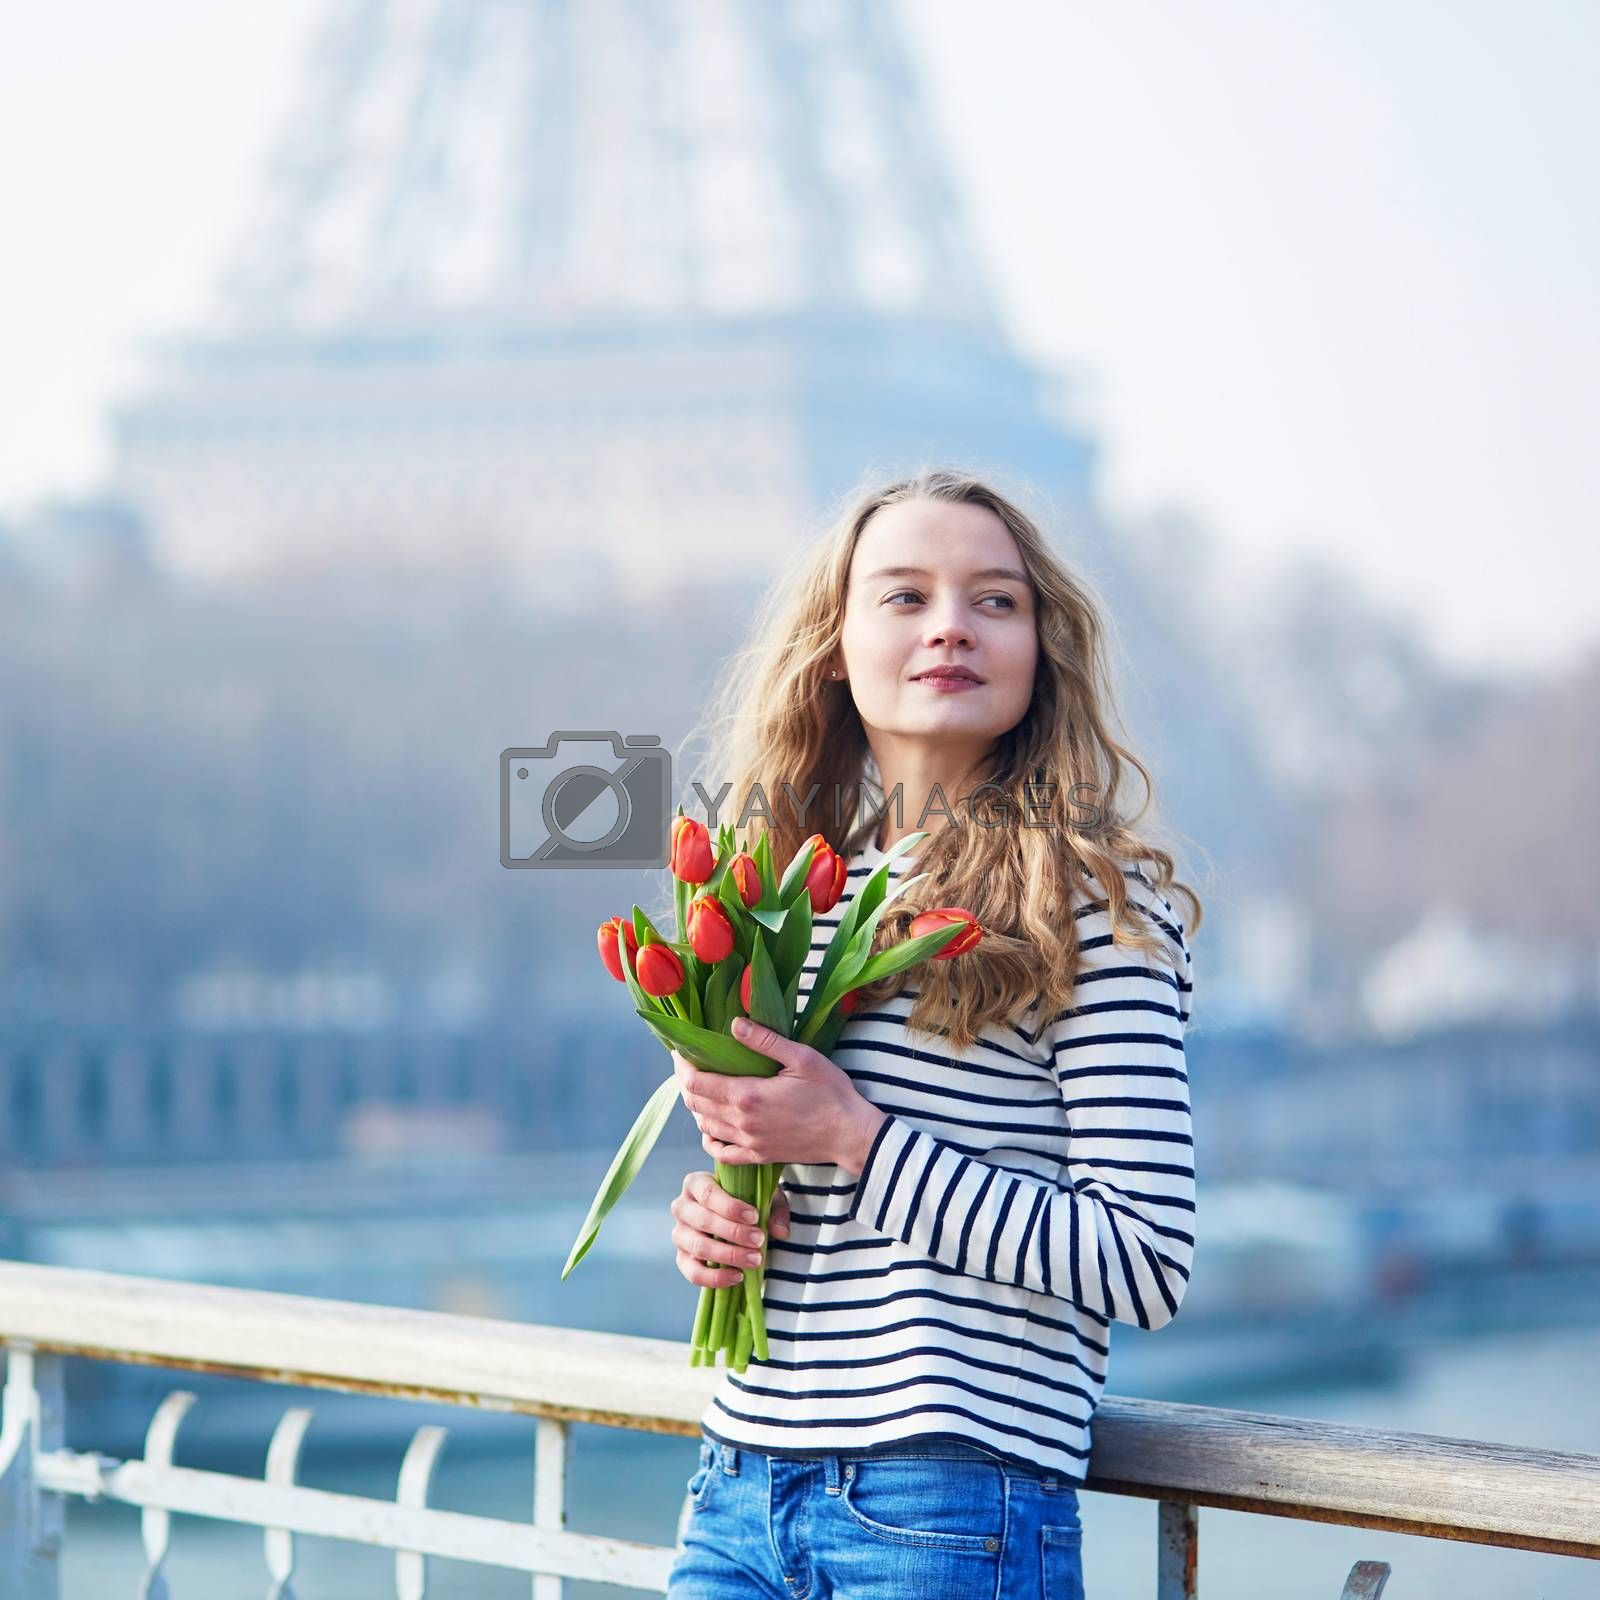 Beautiful young girl with bunch of red tulips near the Eiffel tower in Paris, France on a clear spring day